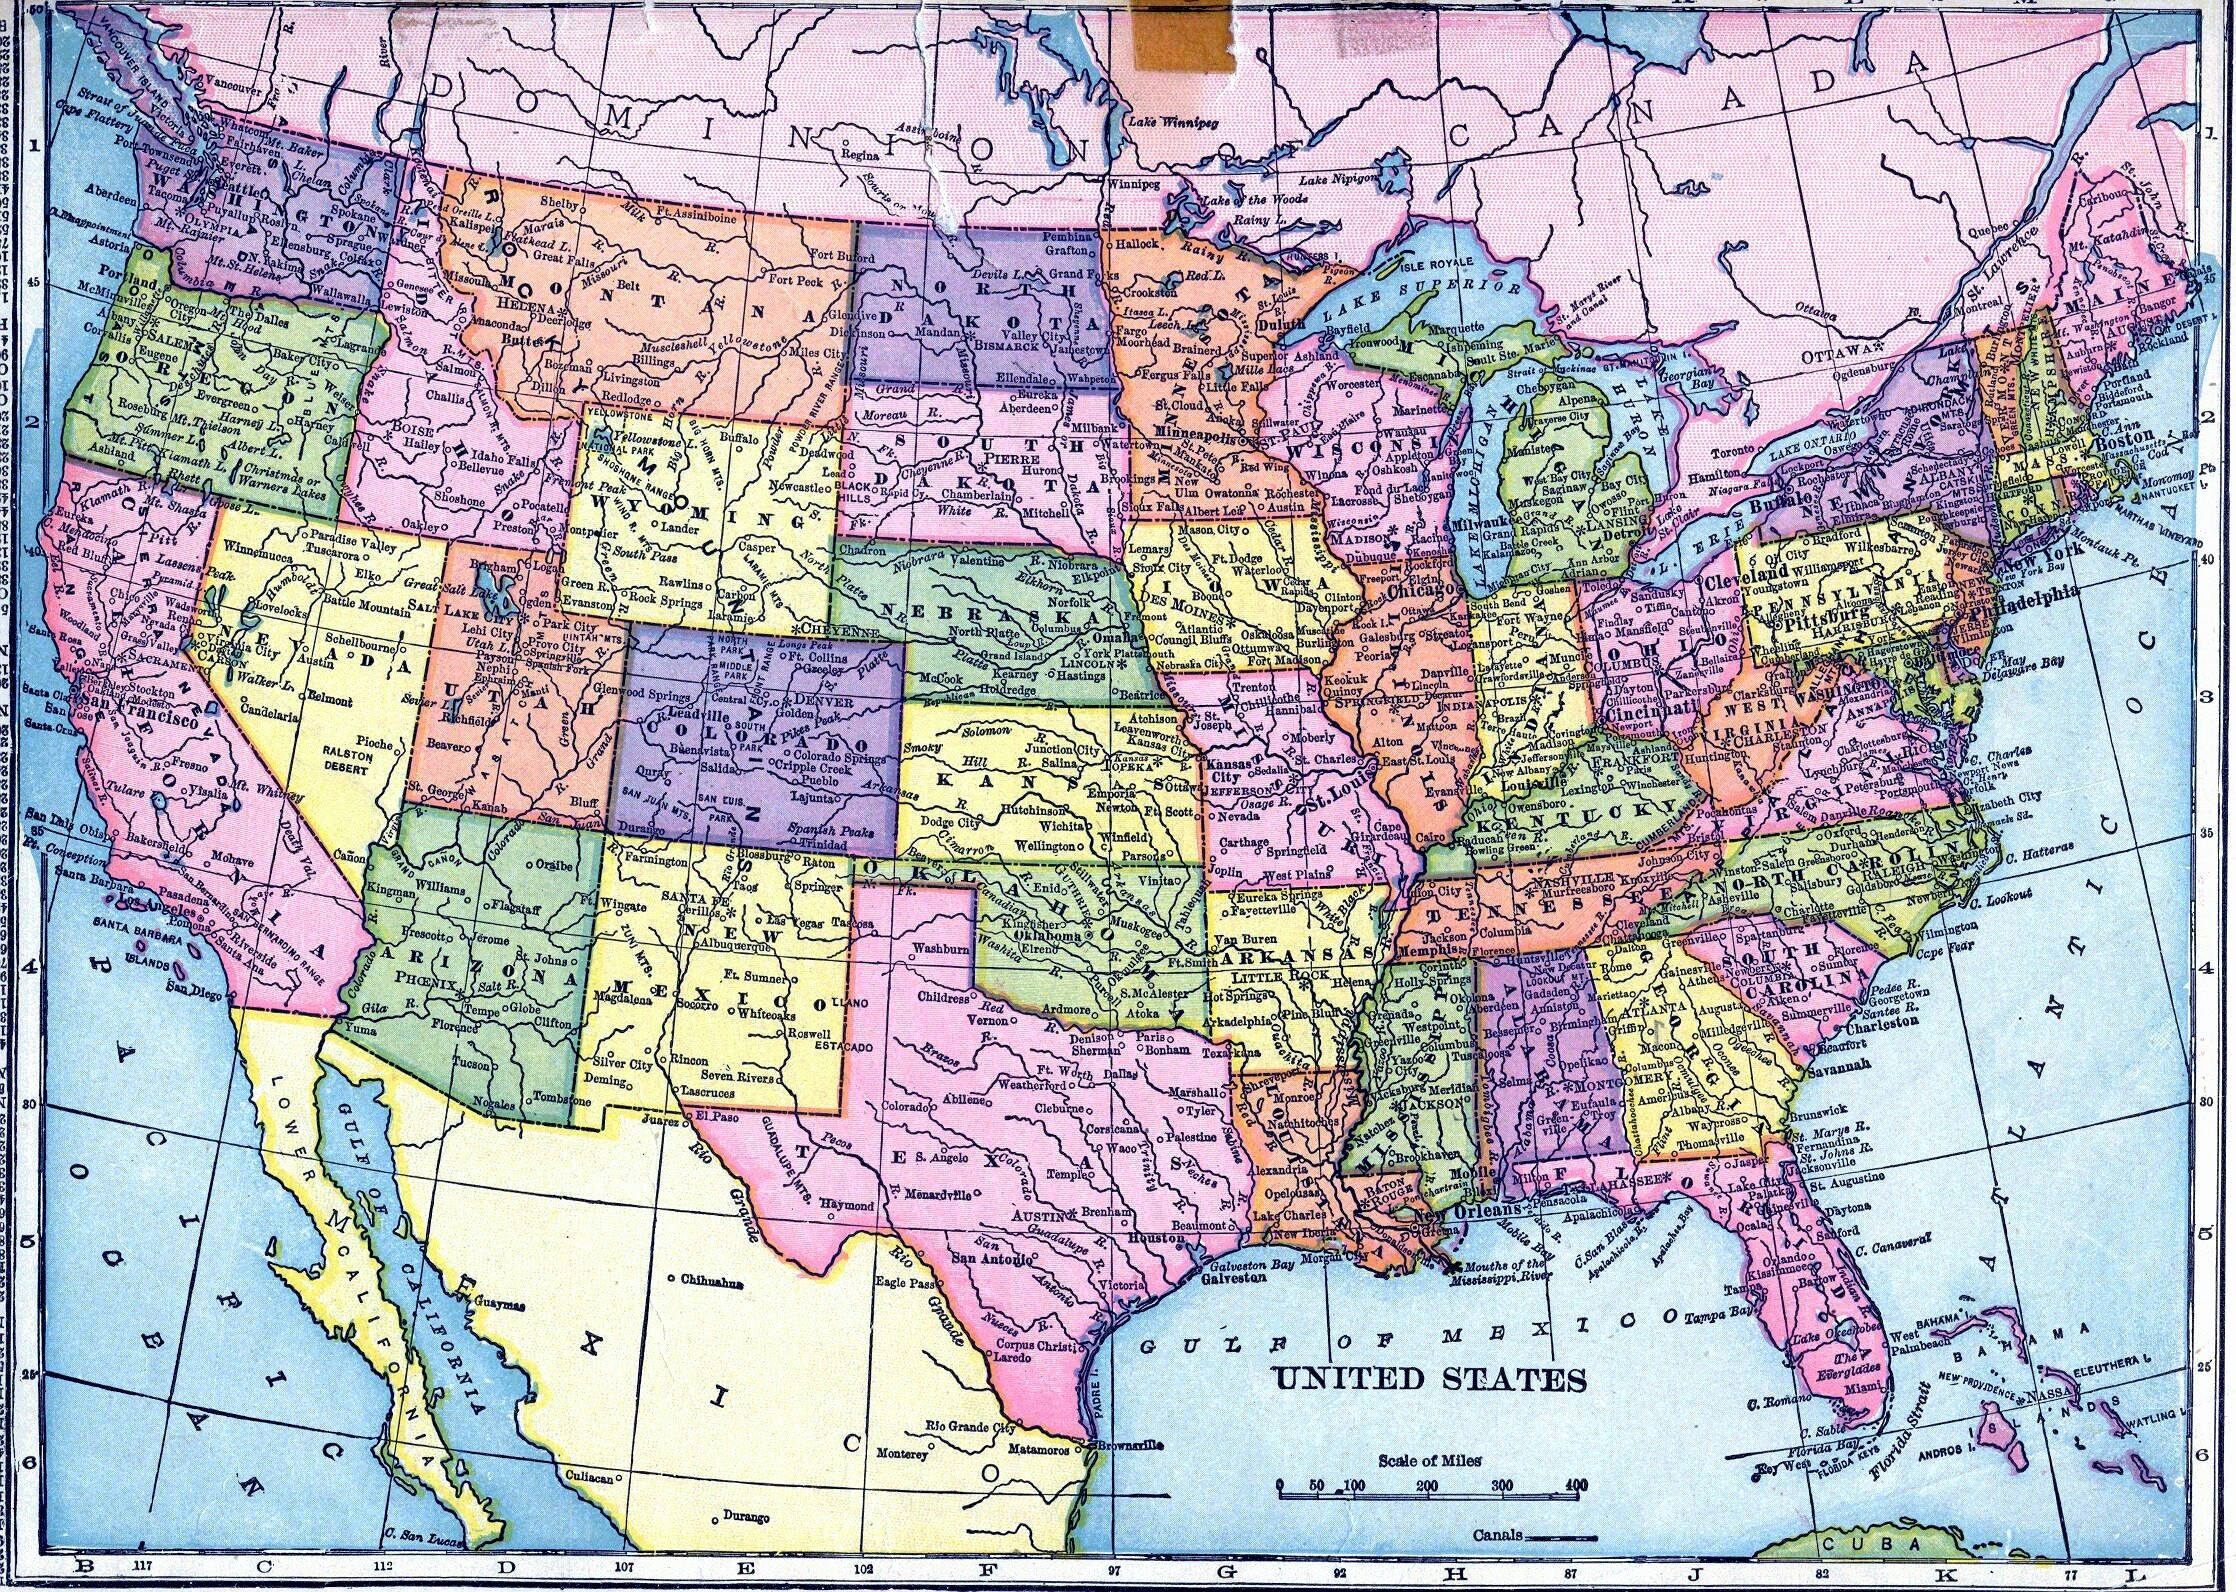 Free Editable Map Of Us Awesome Free Editable Map United States Save Map Florida Roads and